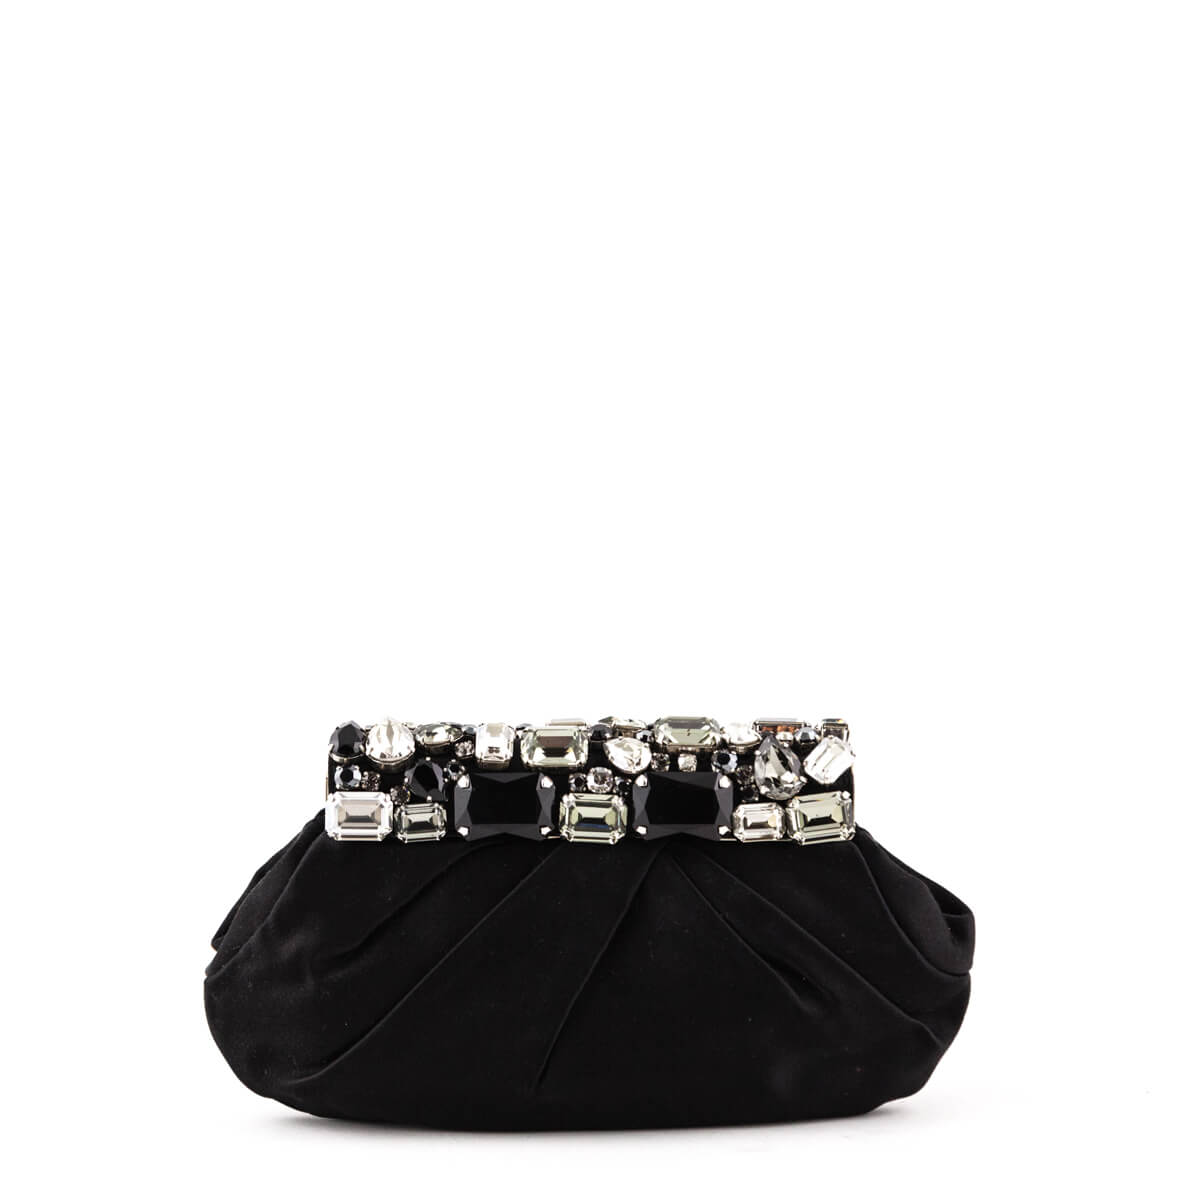 10811c765394 Prada Black Satin Embellished Clutch - LOVE that BAG - Preowned Authentic  Designer Handbags ...